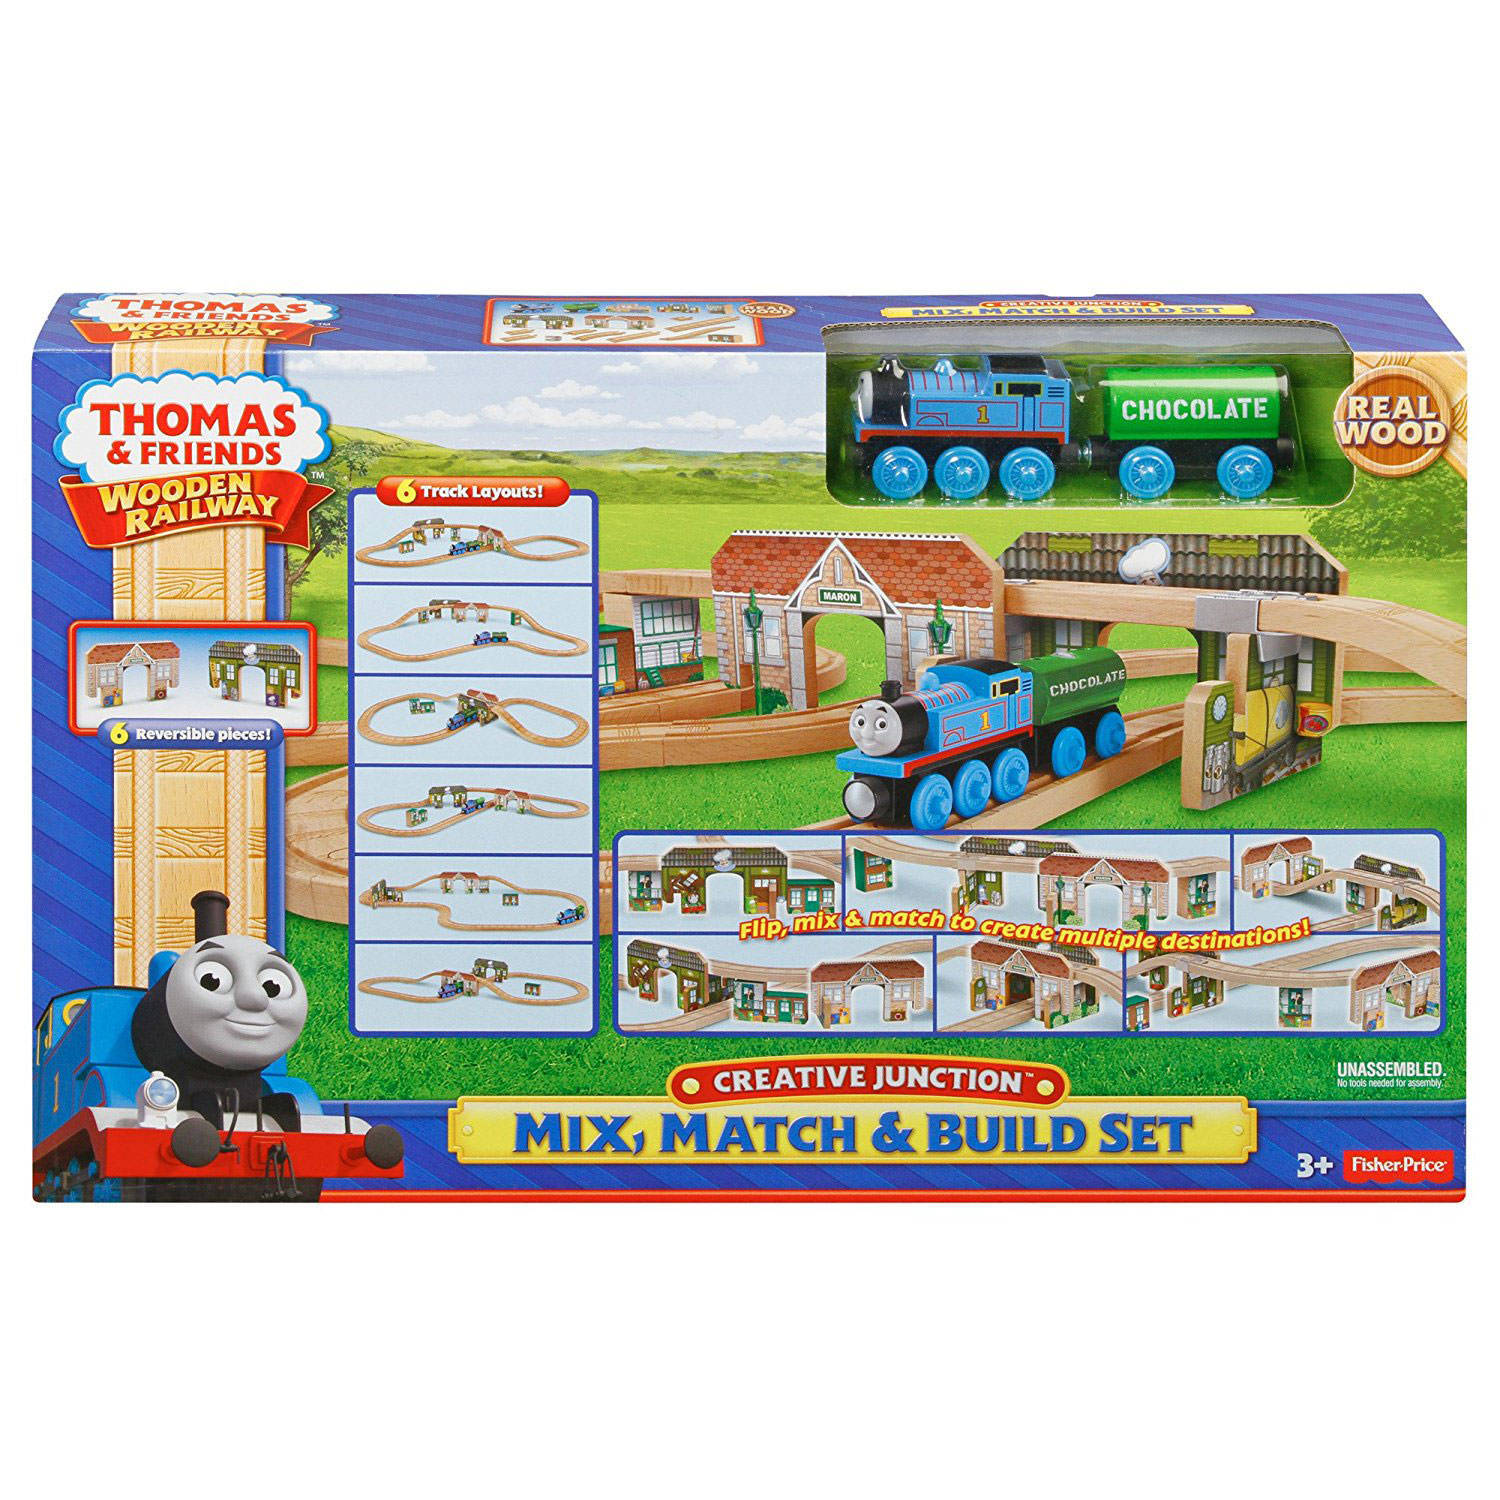 fisher price thomas friends wooden railway creative junction mix